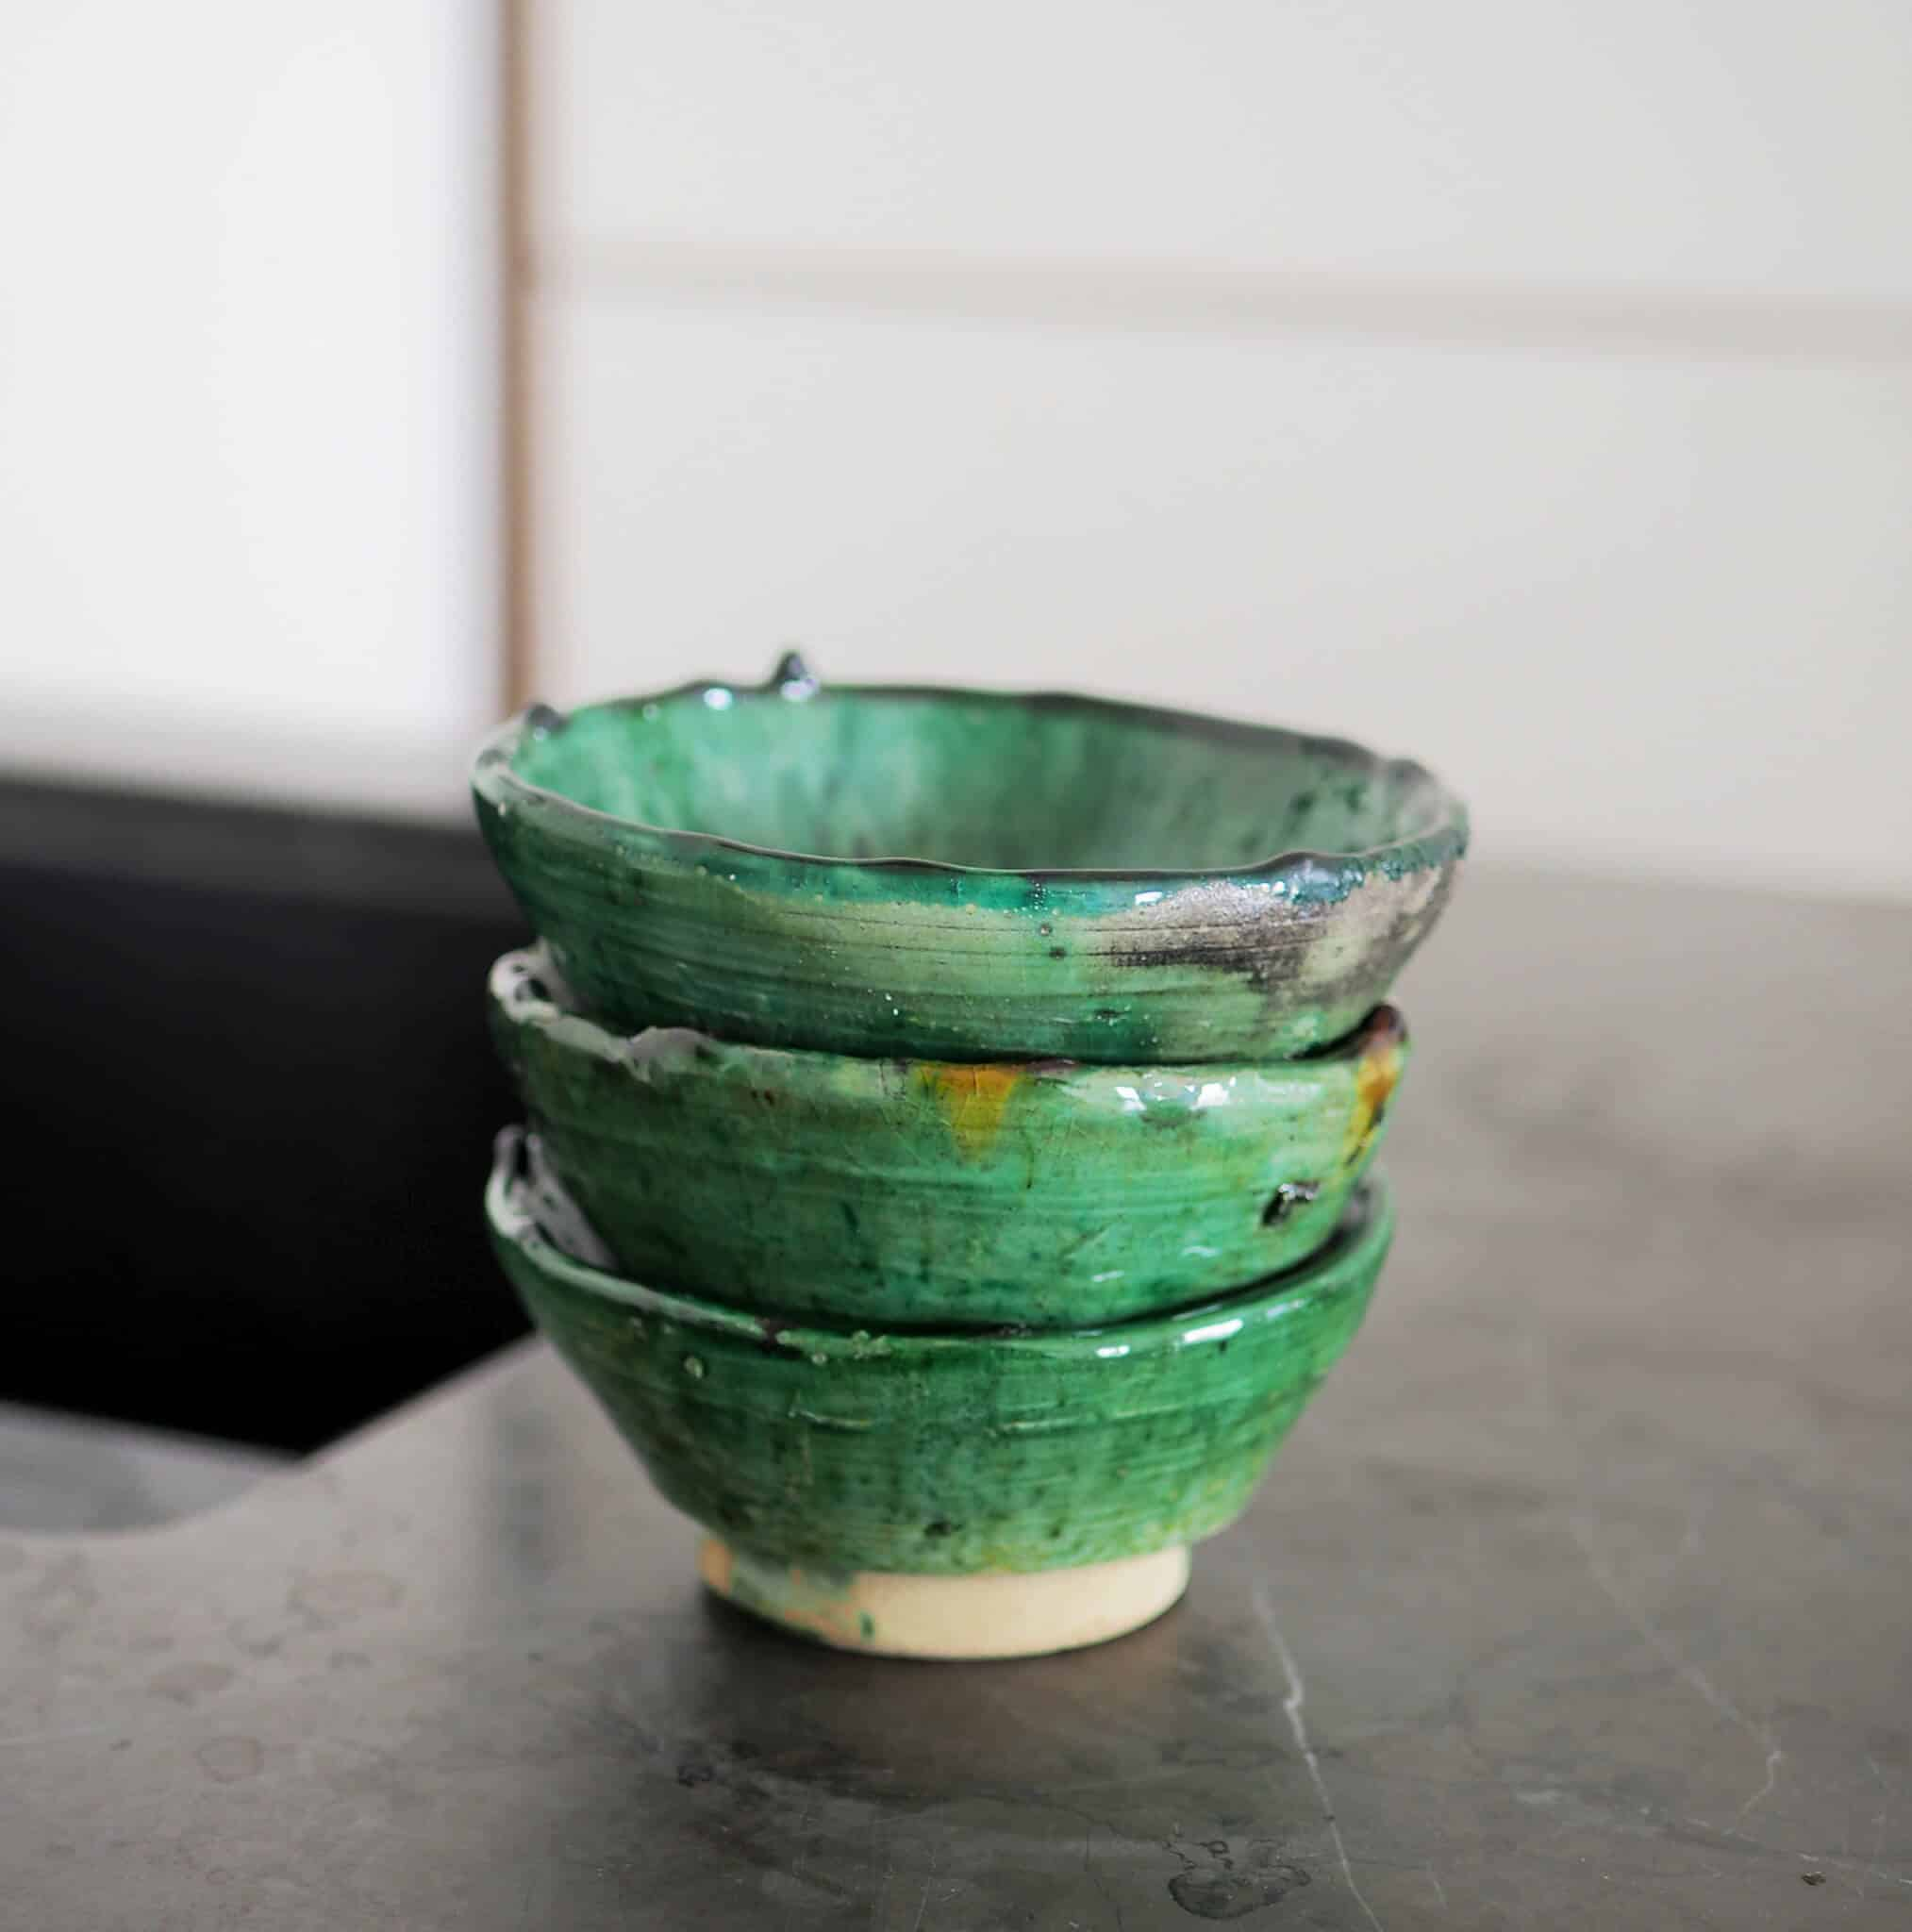 Small side bowls from Morocco